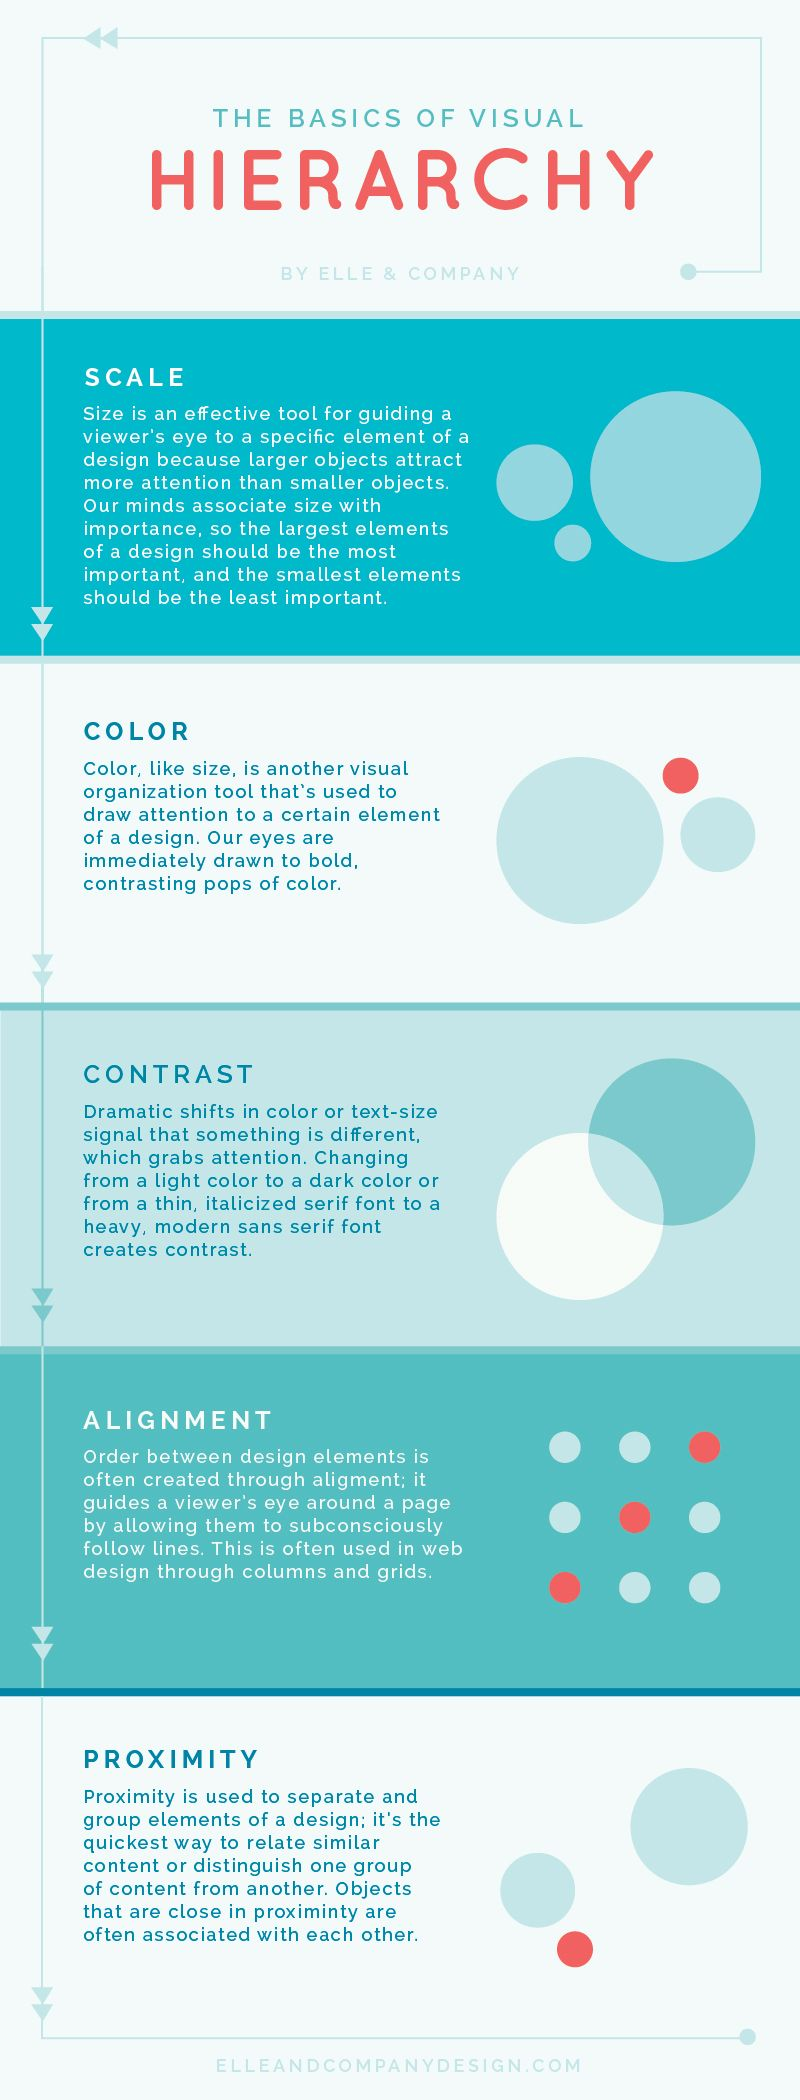 Web Design Basics 5 Elements Of Visual Hierarchy Every Non Designer Must Know With Images Web Design Basics Design Basics Basic Design Principles